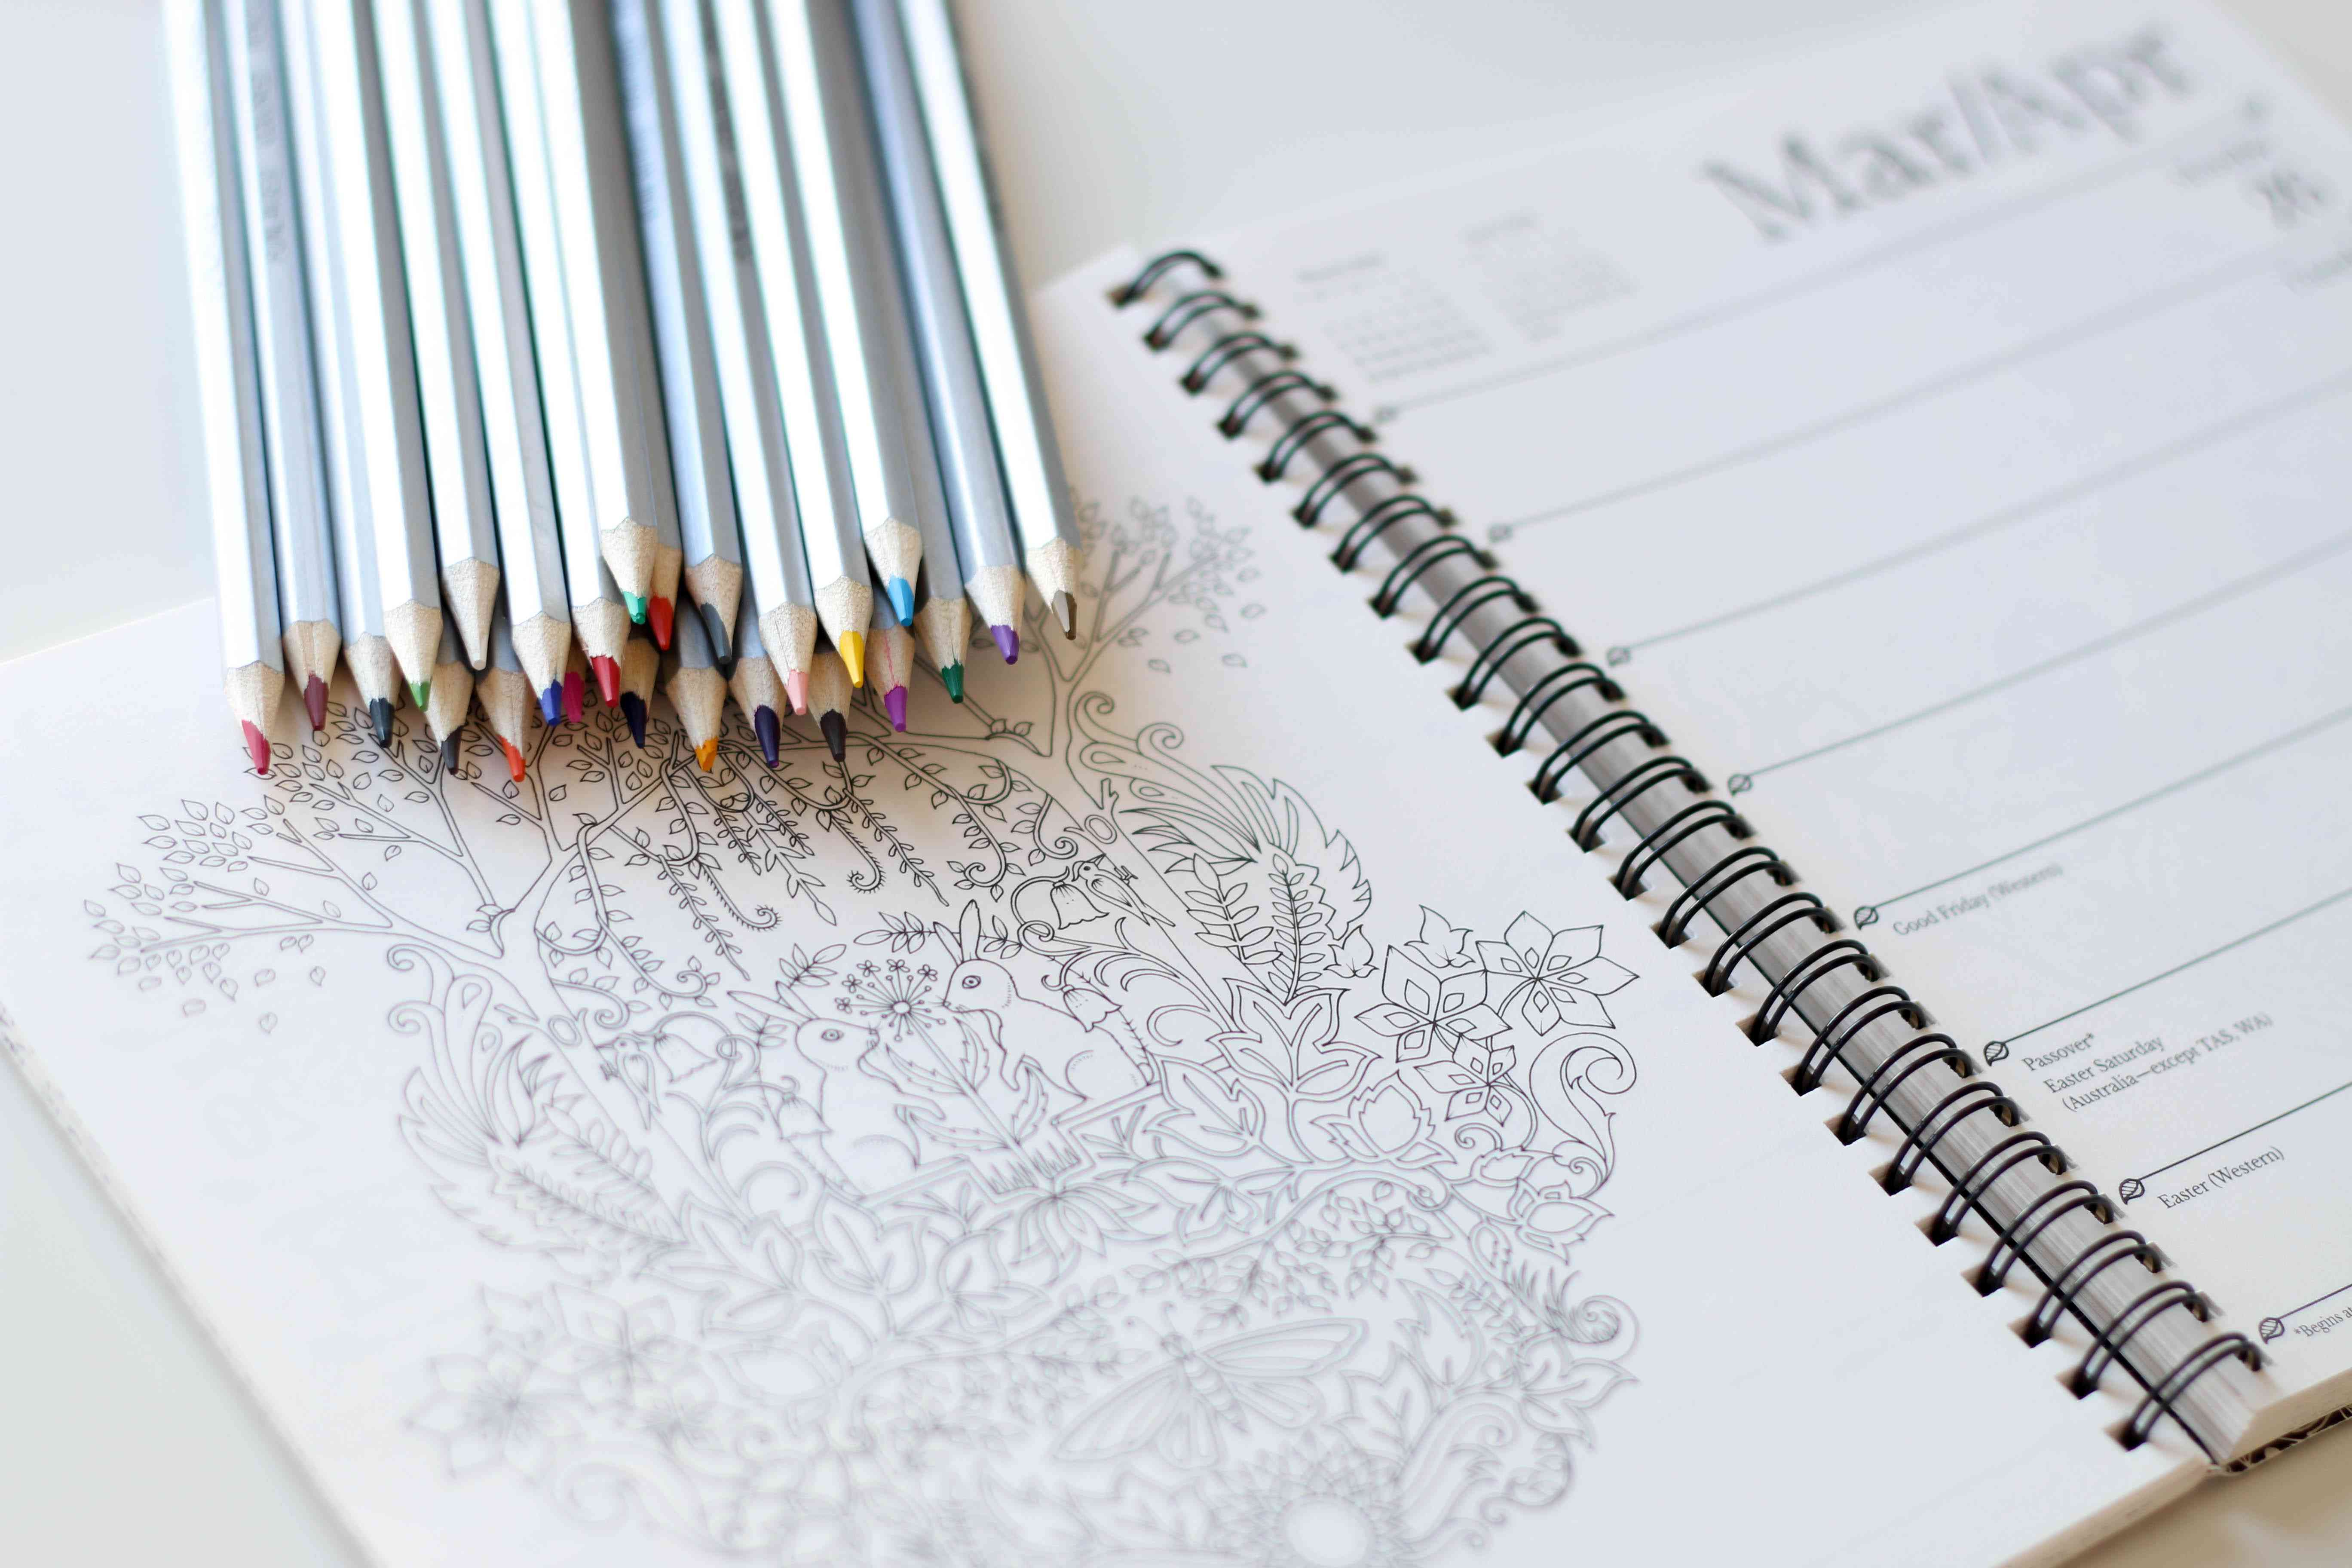 Colored pencils atop a coloring page in a planner